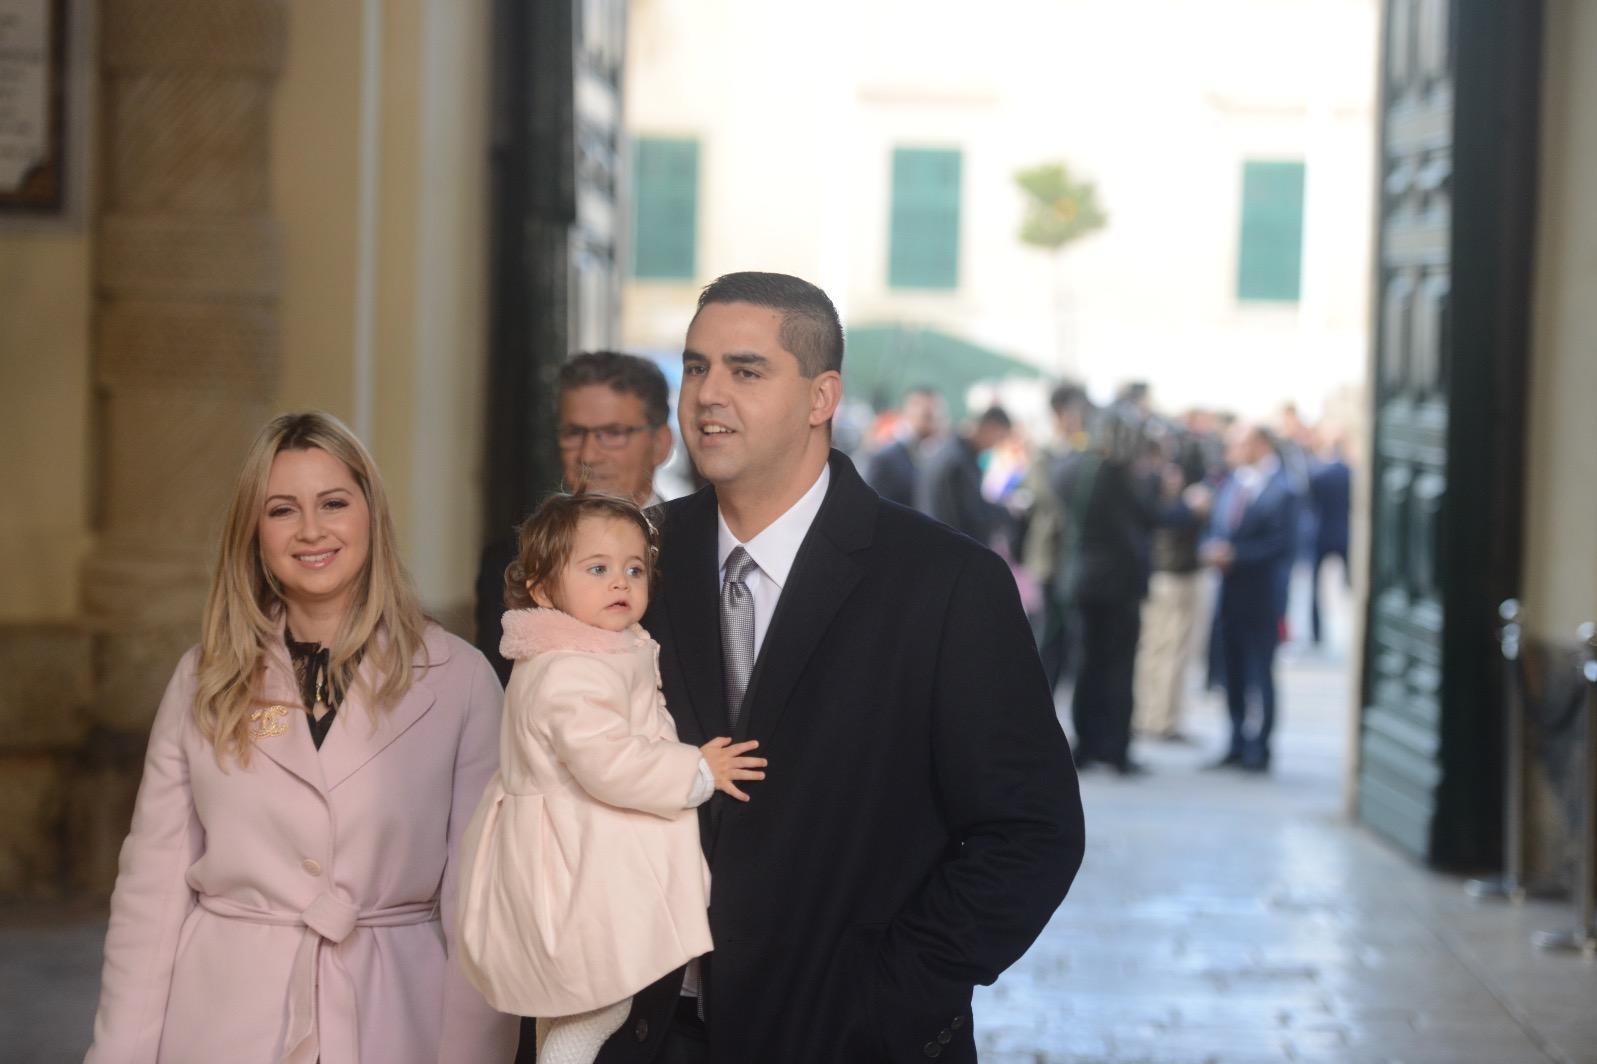 Ian Borg and family arrives for the swearing-in ceremony. He will retain his position as Infrastructure Minister. Photo: Jonathan Borg